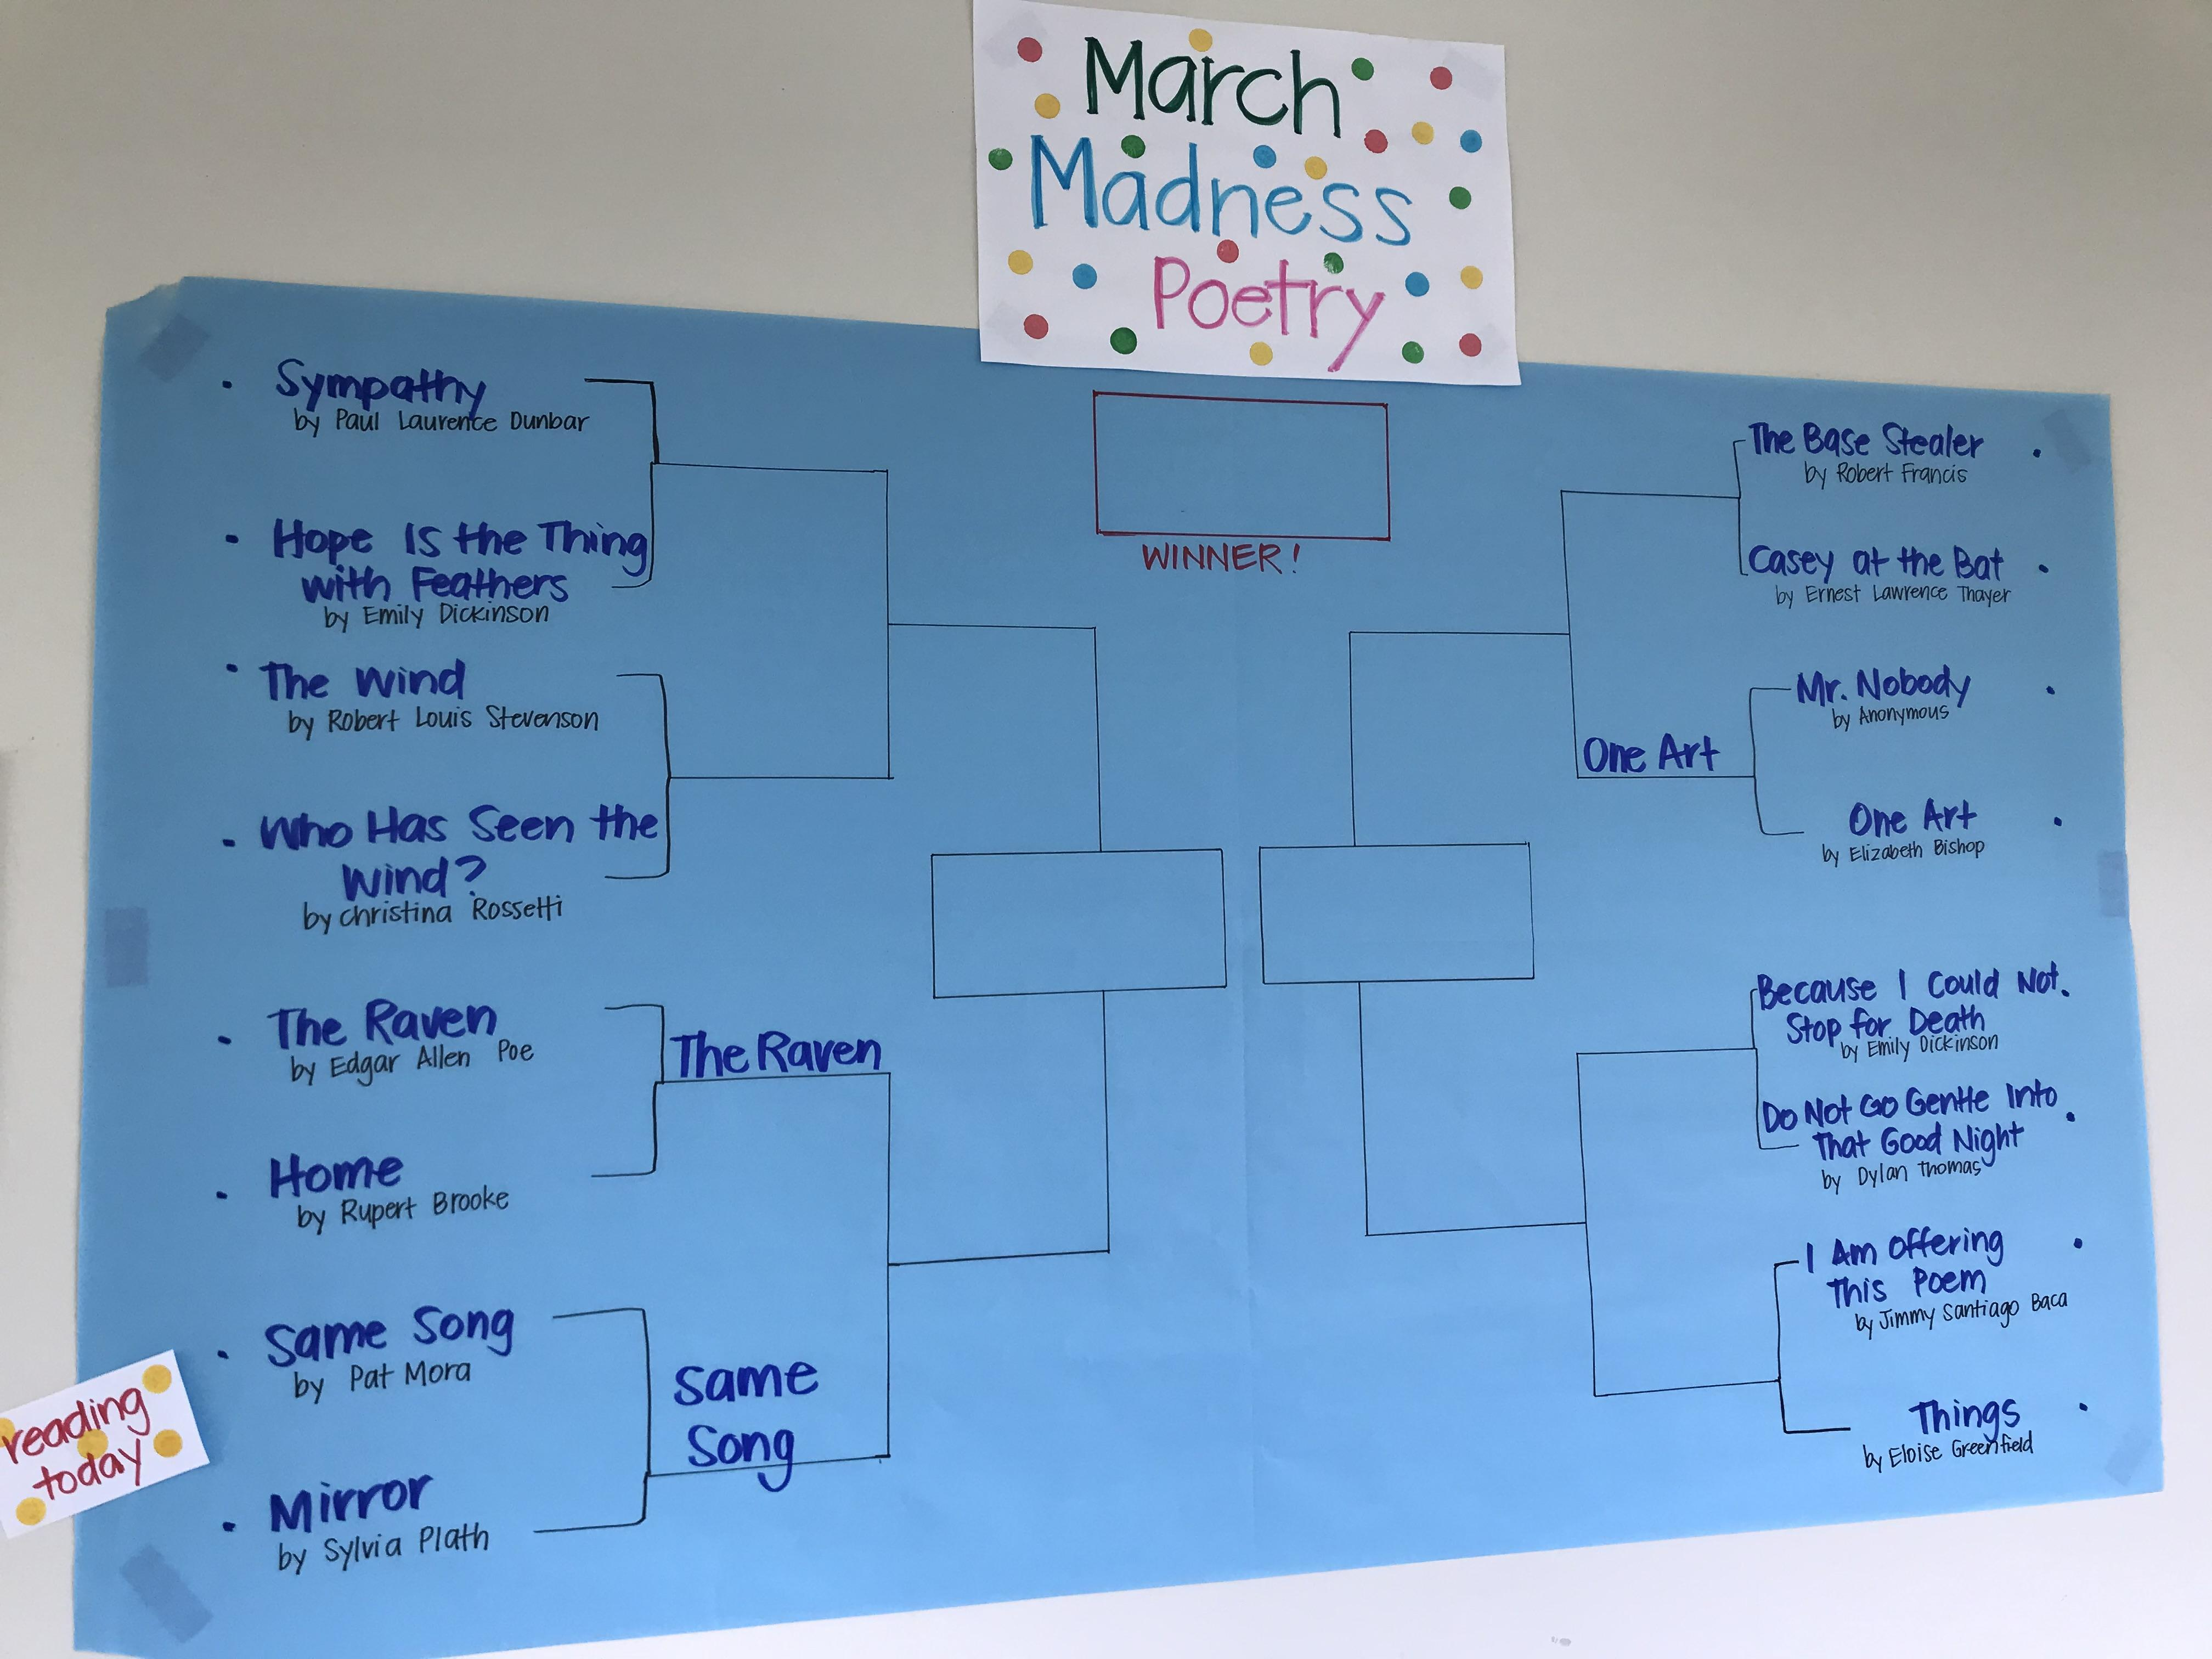 March Madness poetry takes over eighth grade English